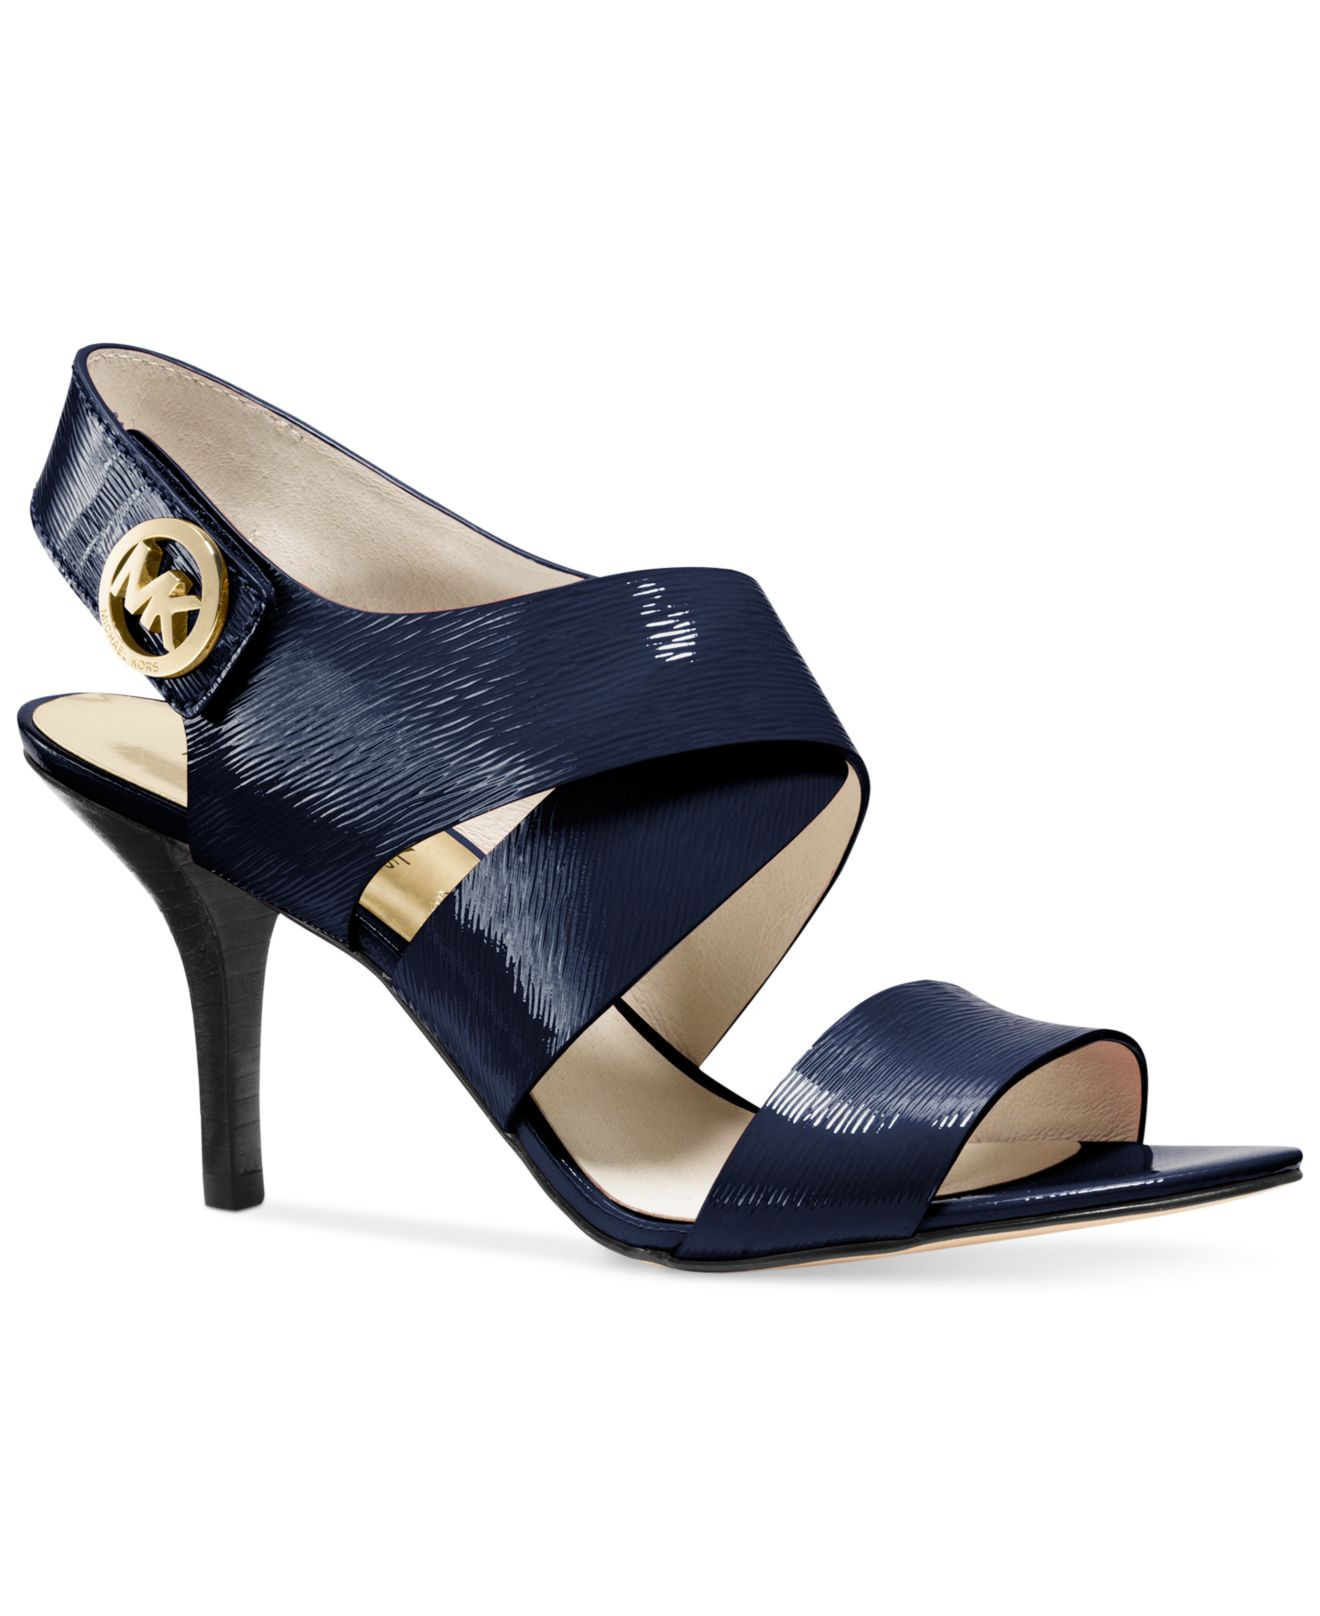 Lyst - Michael Kors Michael Joselle Sandals in Blue